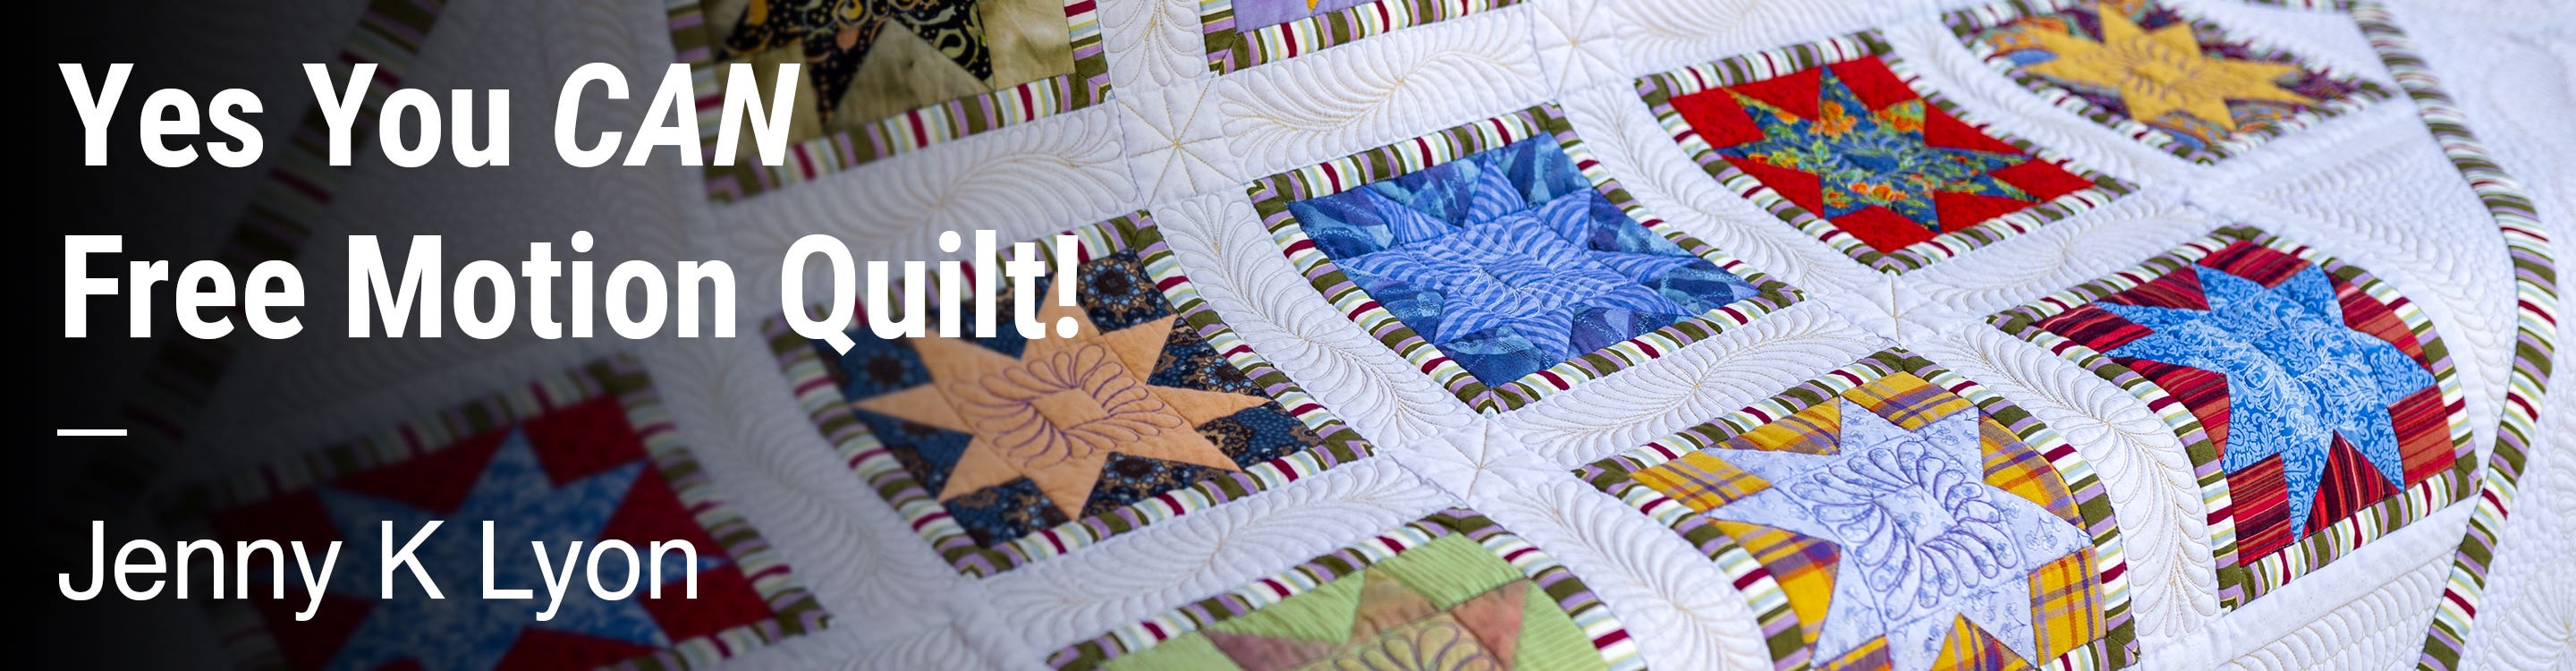 Yes You CAN Free Motion Quilt! Jenny K Lyon